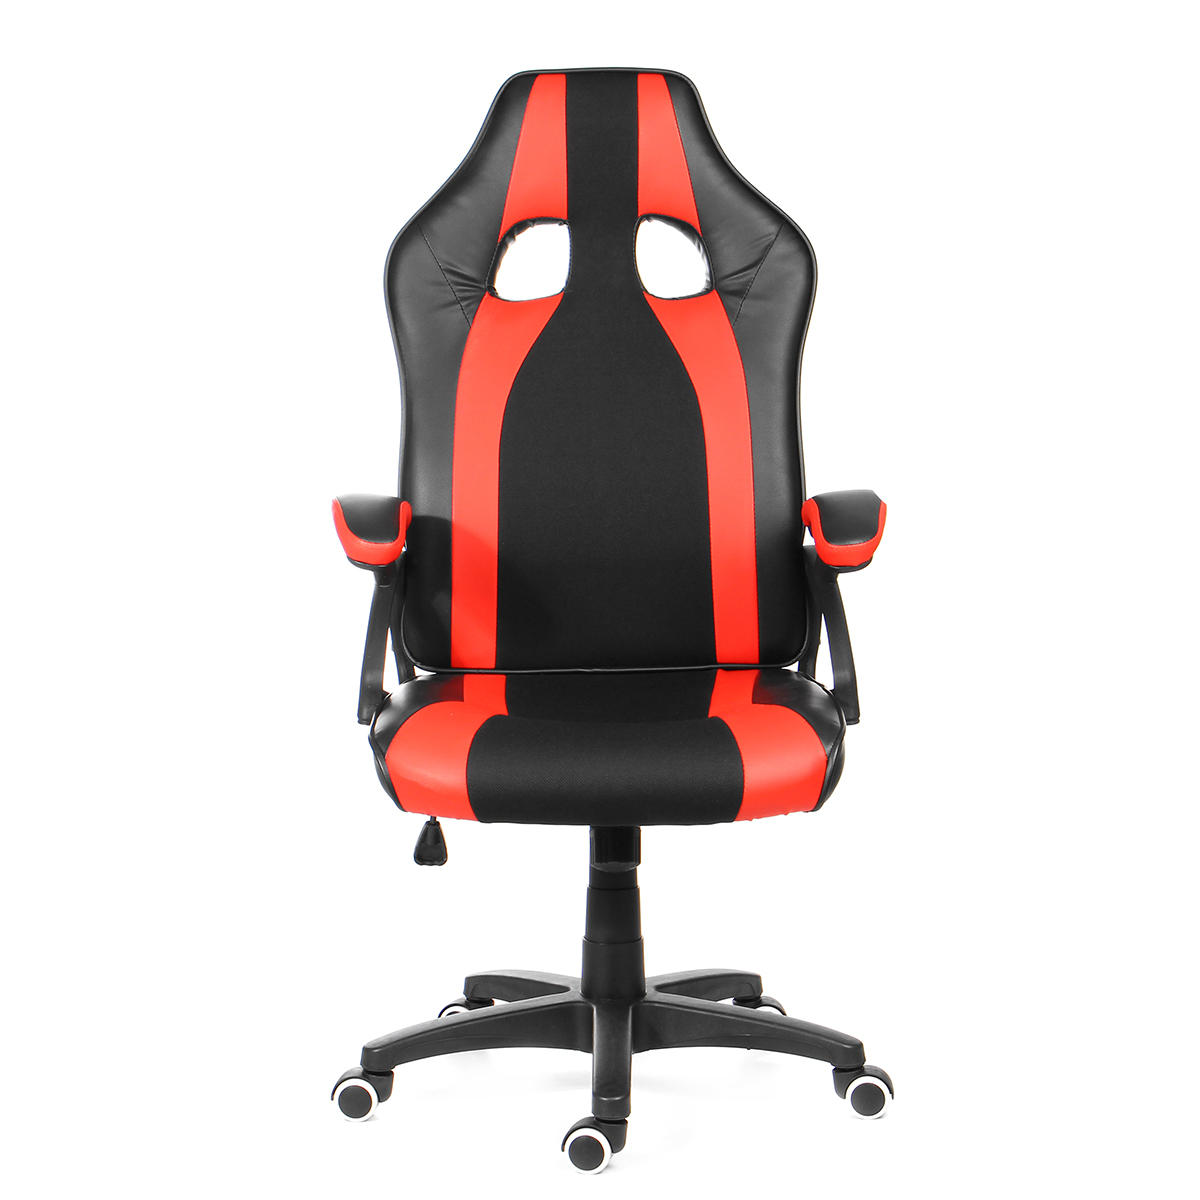 Ergonomic Adjustable Leather Office Chair High-Back Gaming Chair Swivel Reclining Executive Laptop Desk Chair